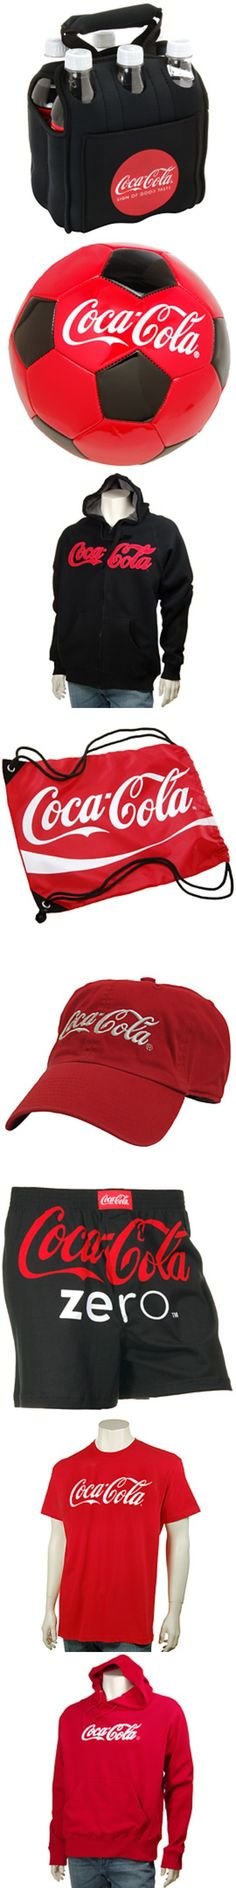 Check out these cool gifts for your Coca-Cola fan. @CocaColaStore